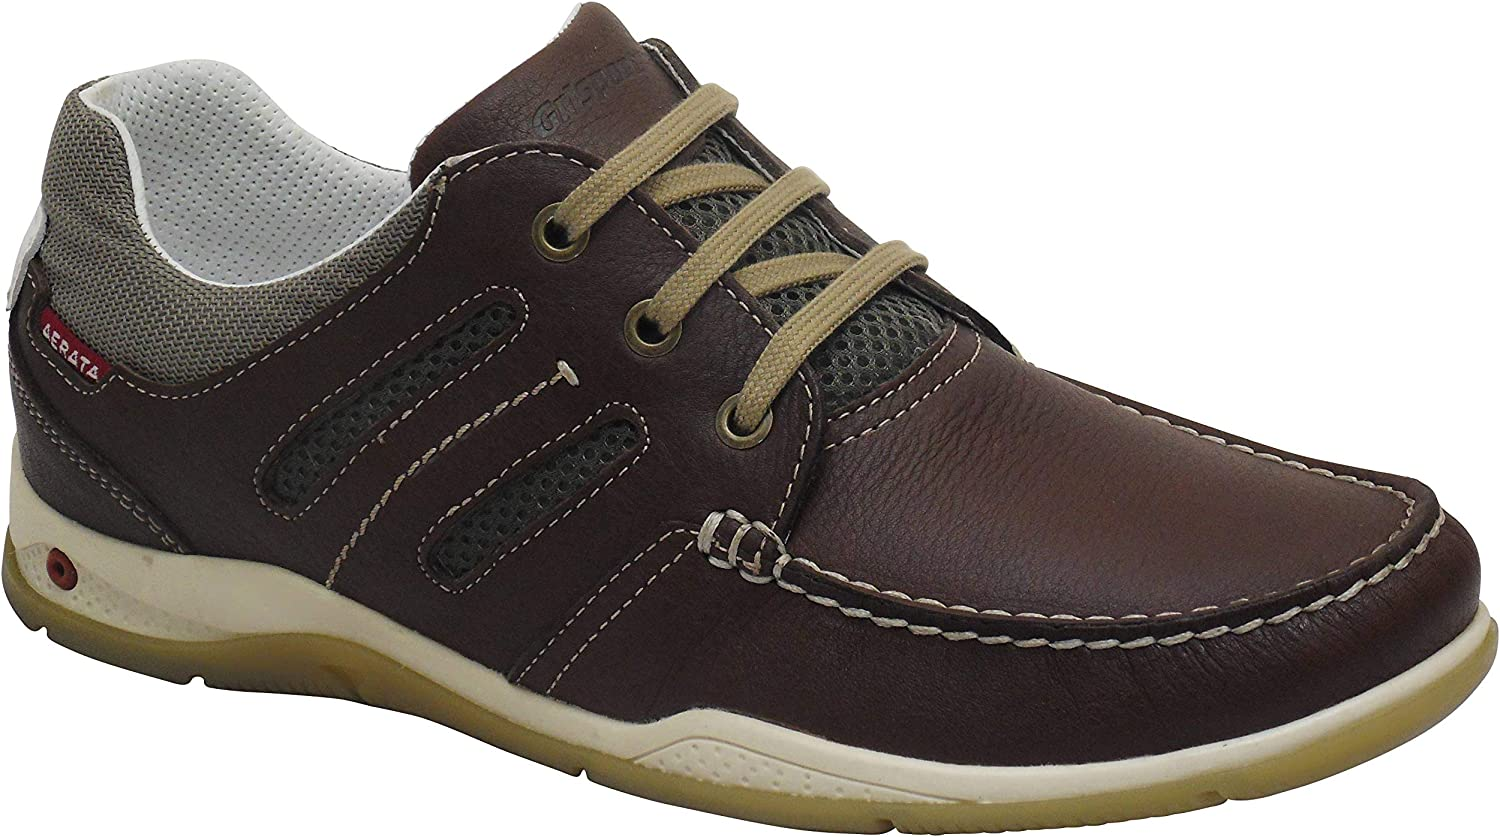 Aerata Magellan by greyport Quality Lightweight Leather Deck shoes Brown